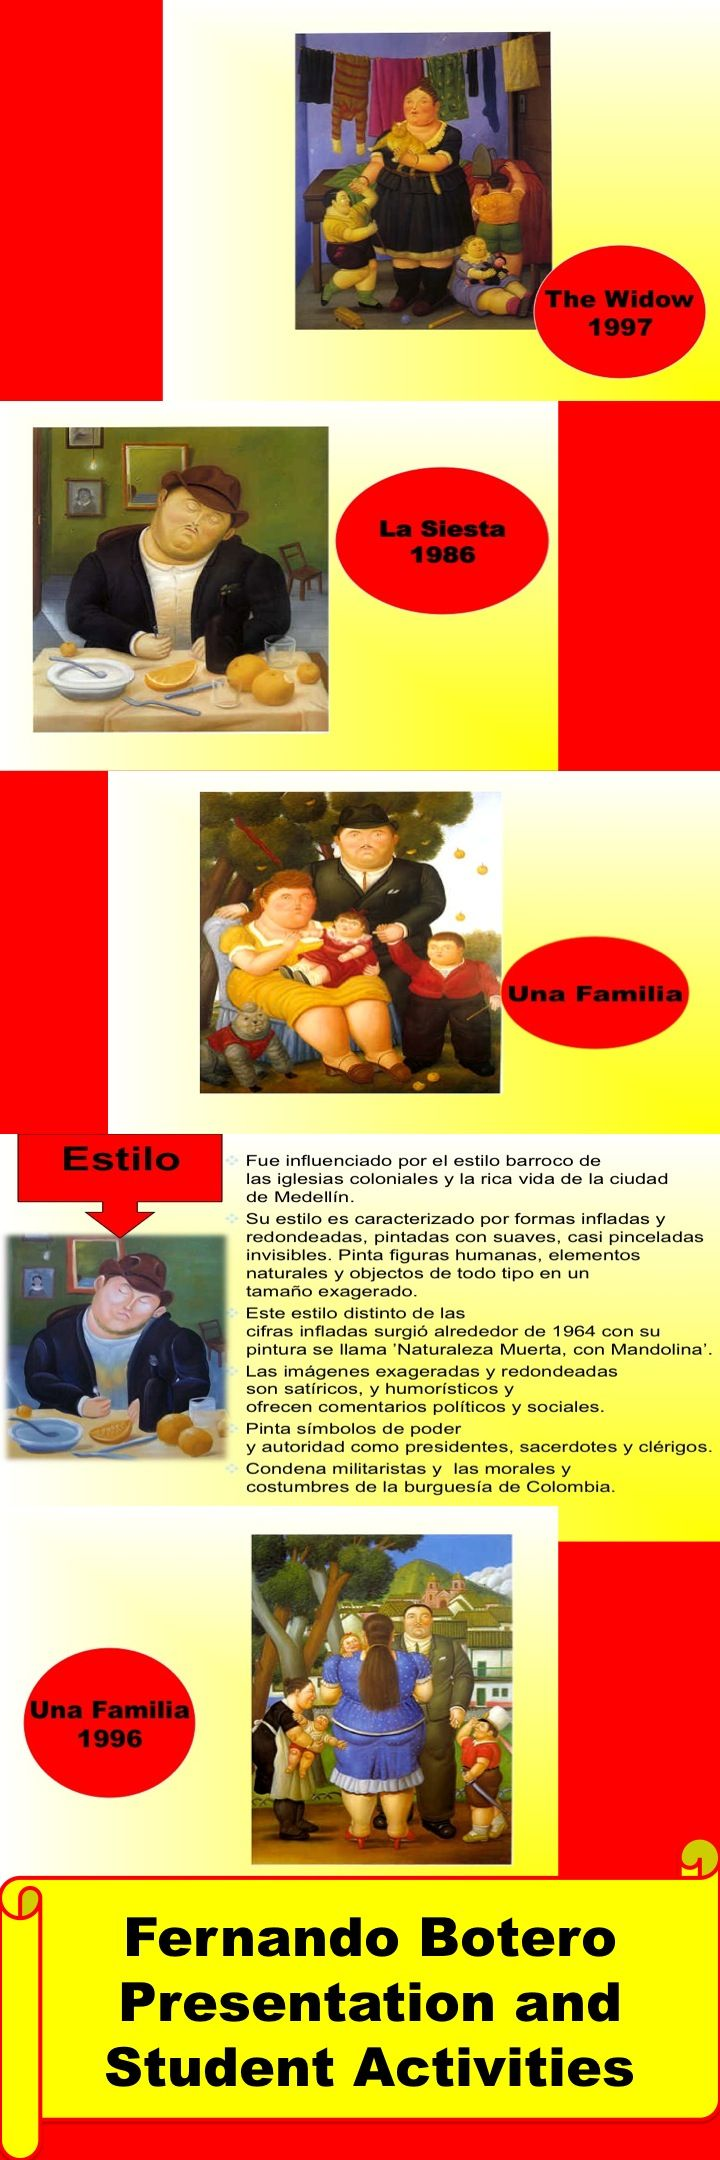 Fernando Botero Presentation and student activities. (in Spanish)